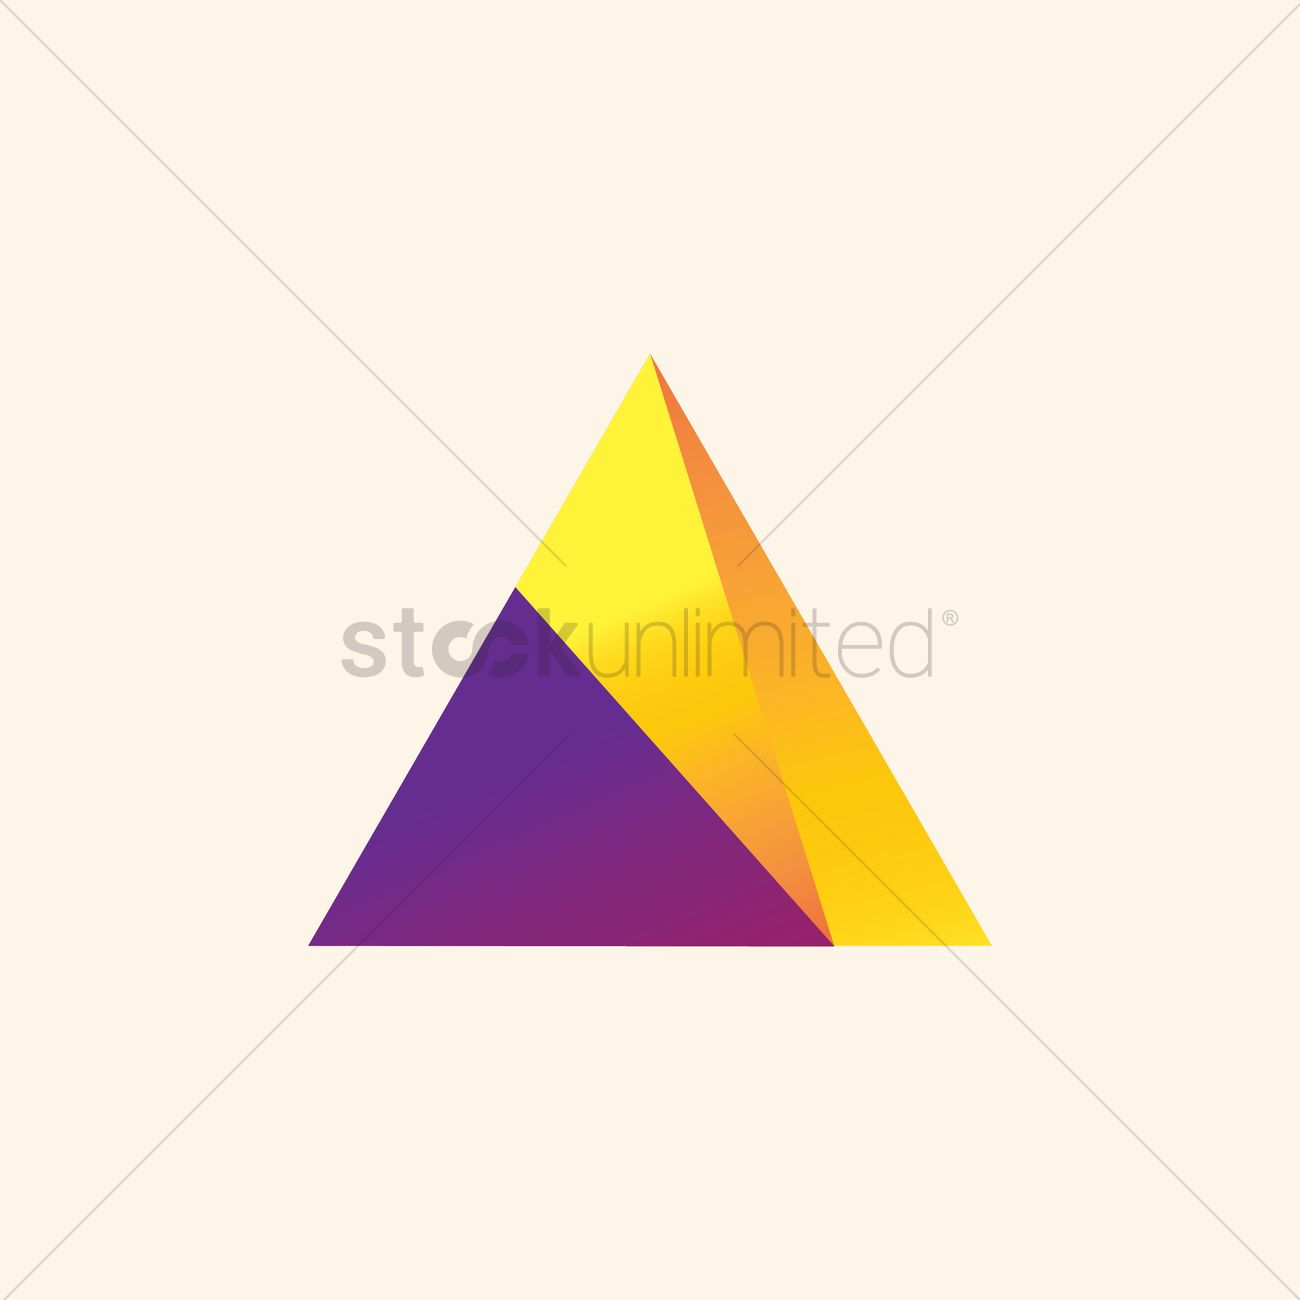 pyramid logo element vector image 1634039 stockunlimited